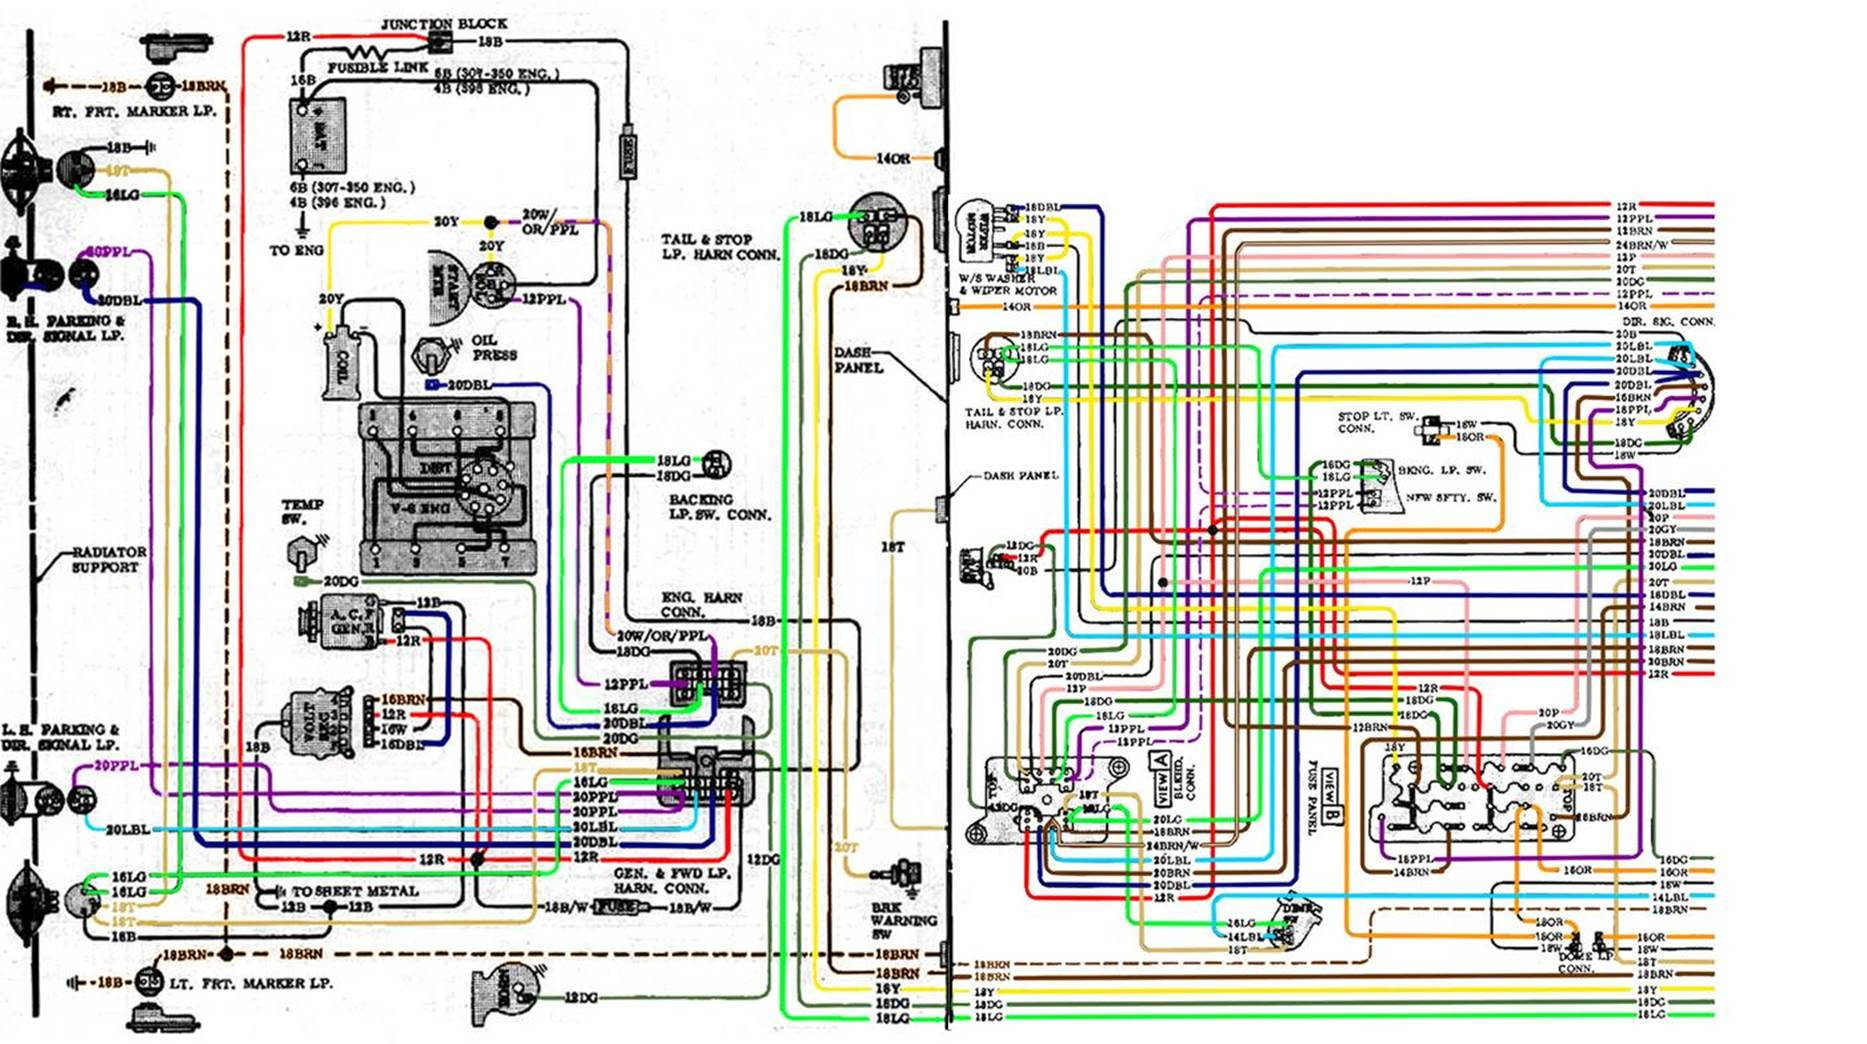 image002 67 72 chevy wiring diagram  at bayanpartner.co